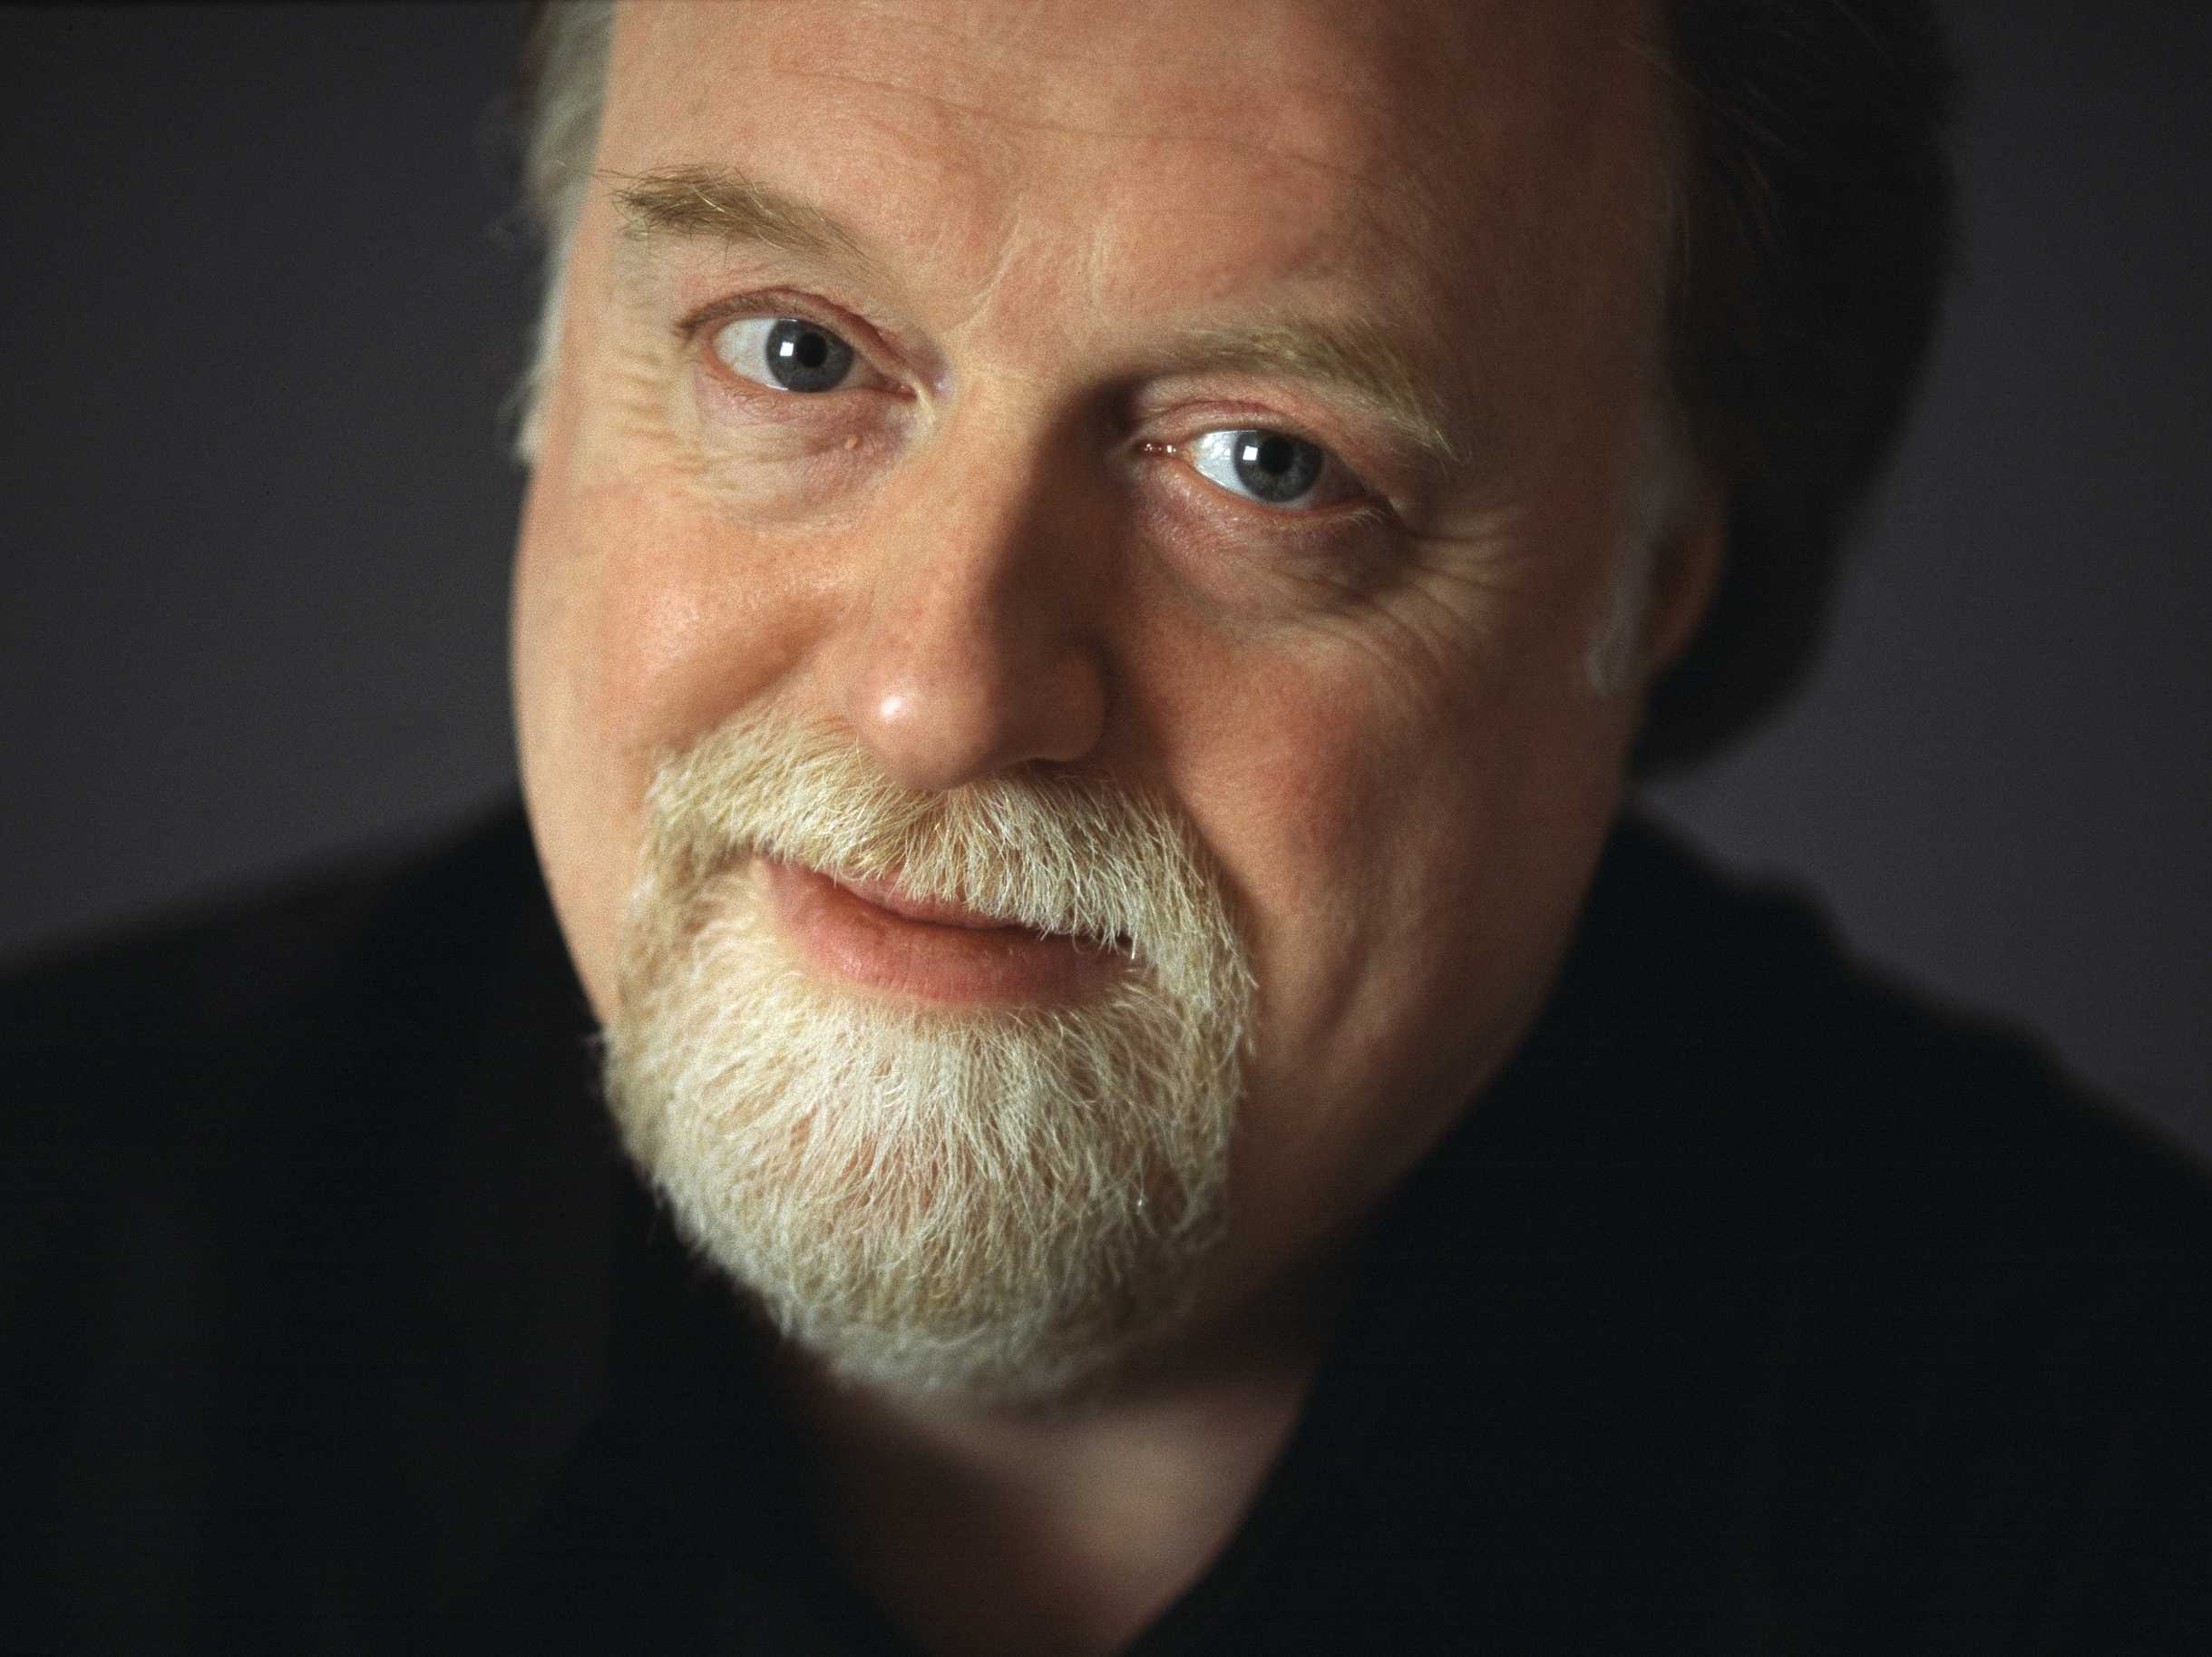 Peter Donohoe plays in loops and verses